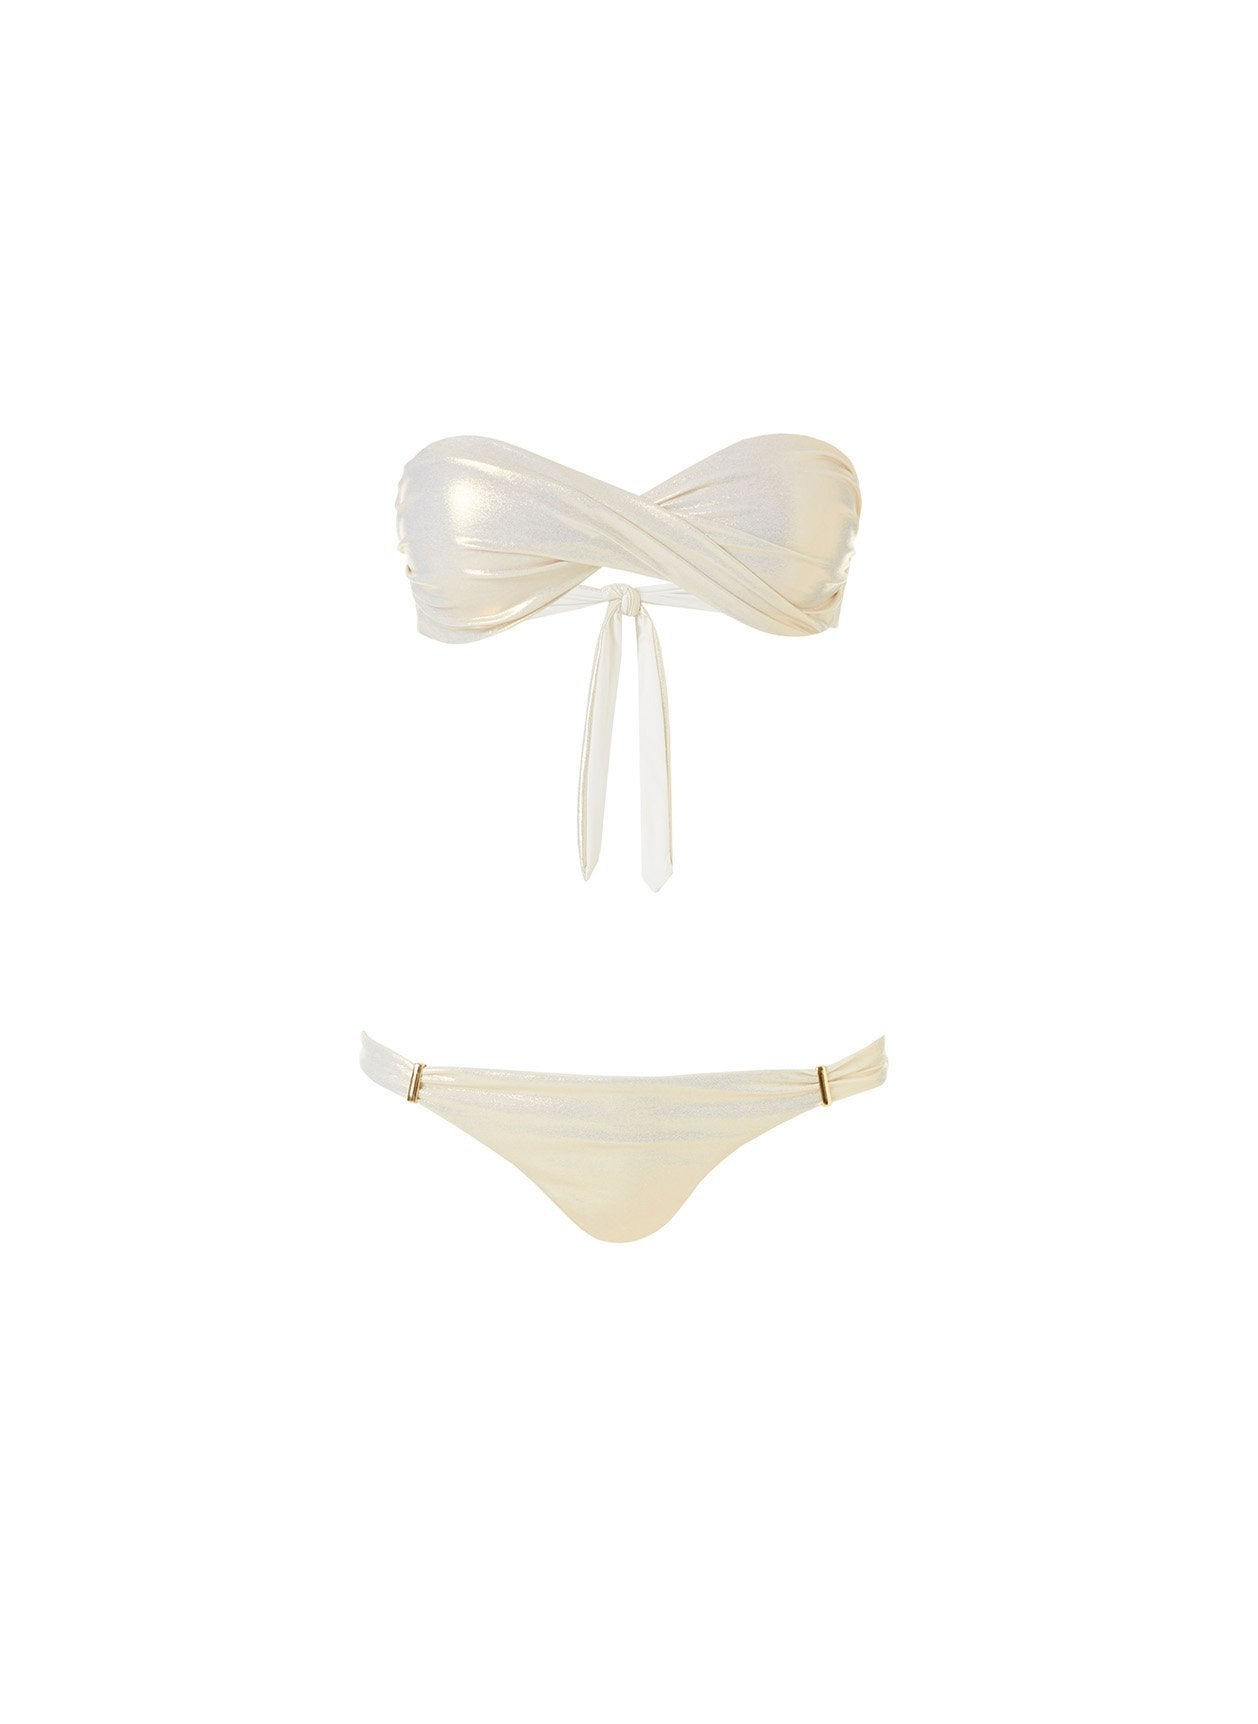 martinique bikini gold